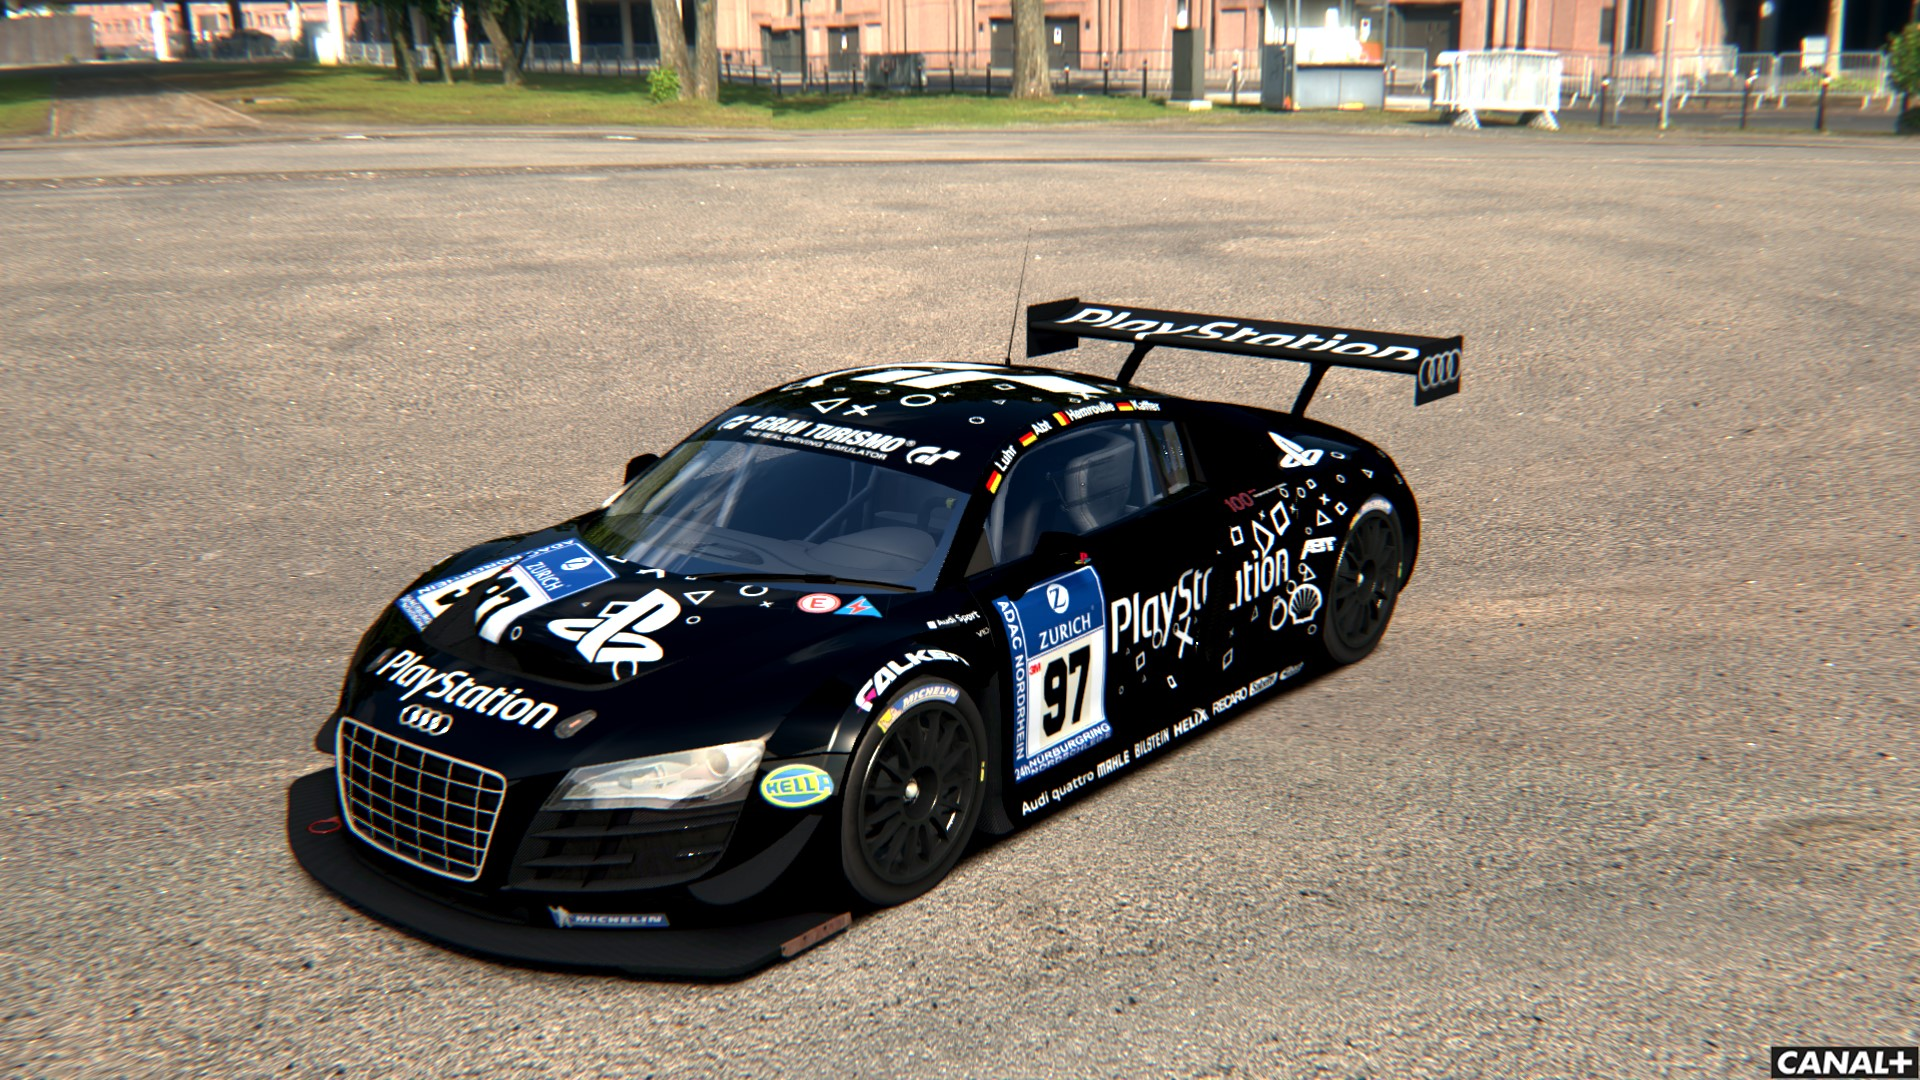 Showroom_audi_r8_lms_27-10-2014-19-49-46.jpg